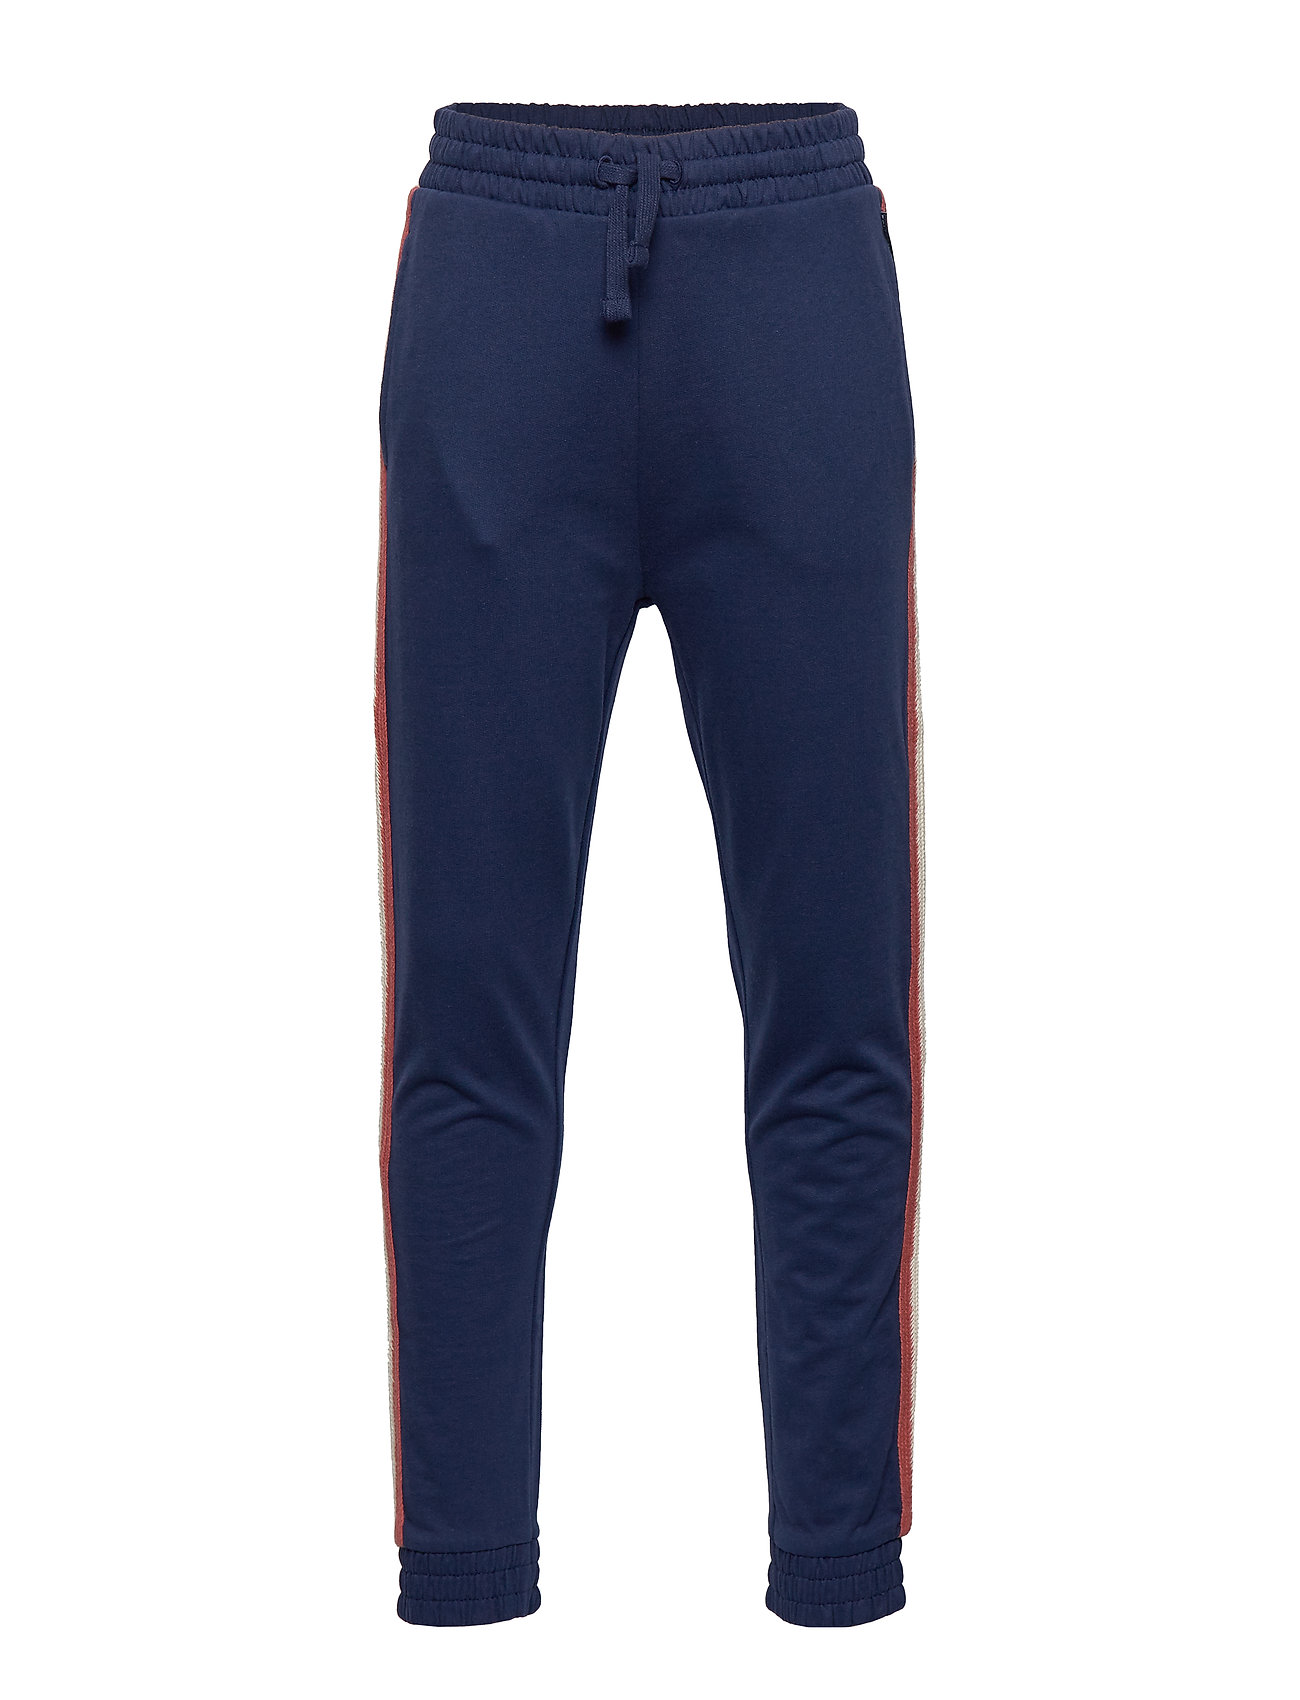 Polarn O. Pyret Trousers Jersey School - MEDIEVAL BLUE